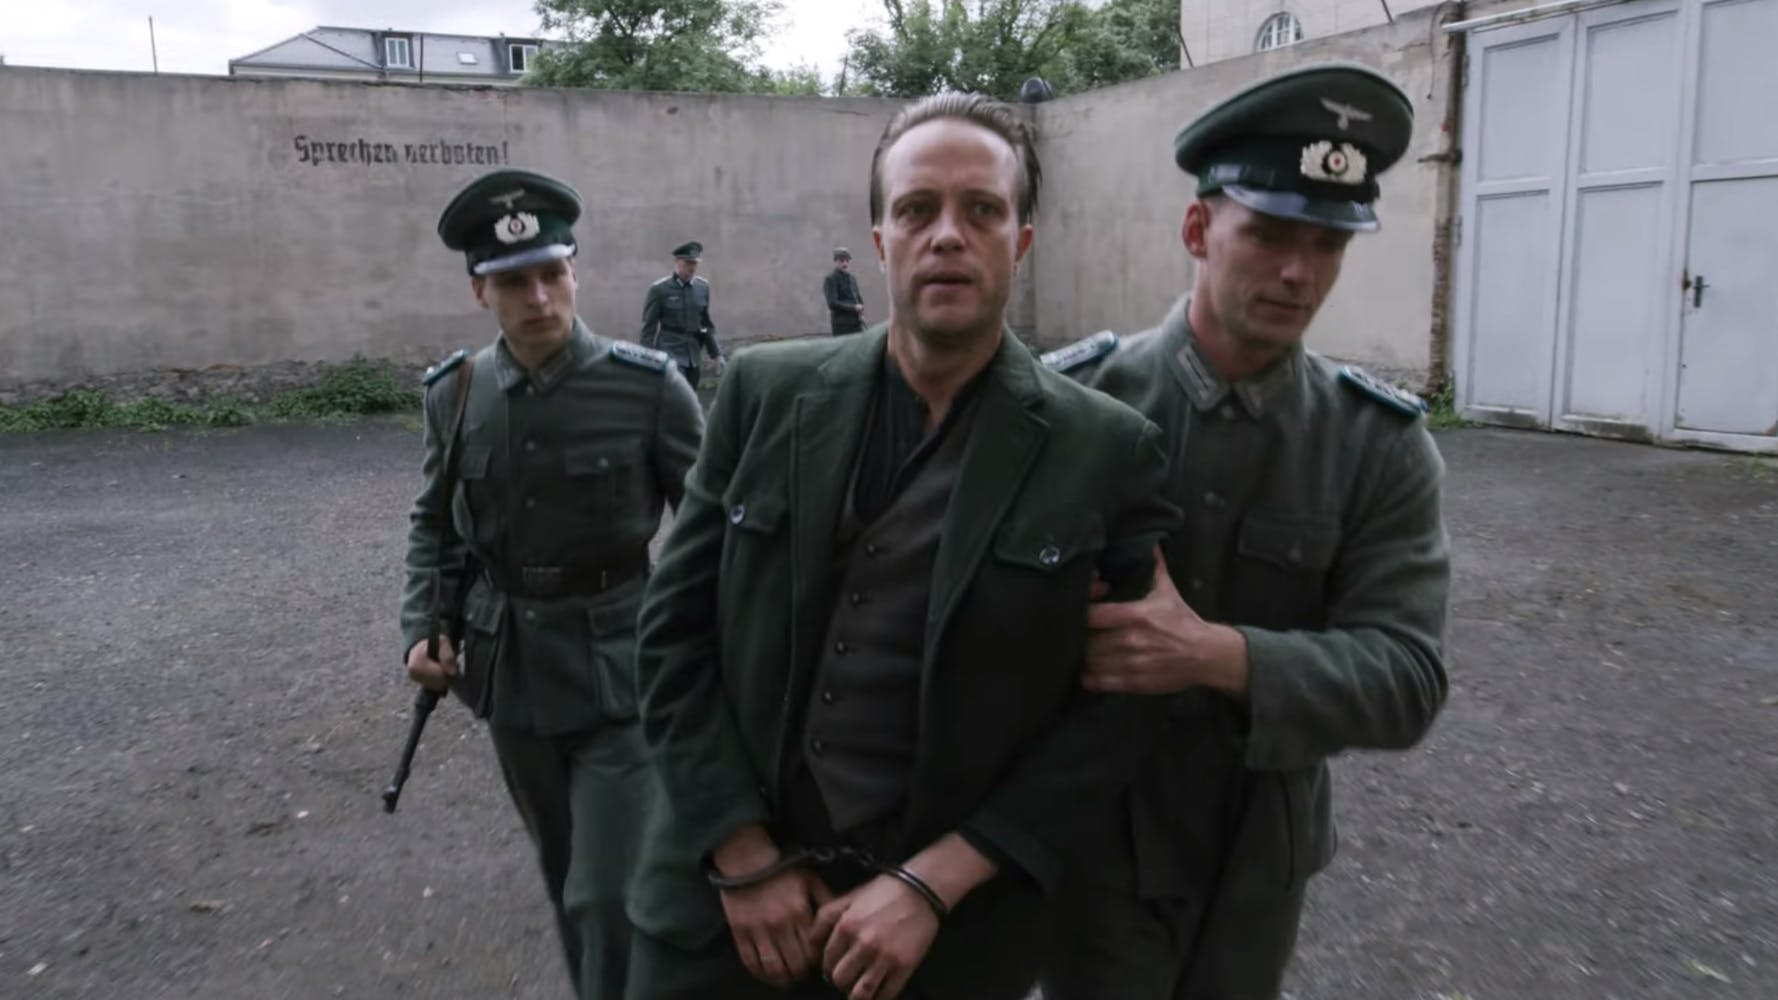 A man in a green suit, handcuffed, being escorted by two men in green military uniform.